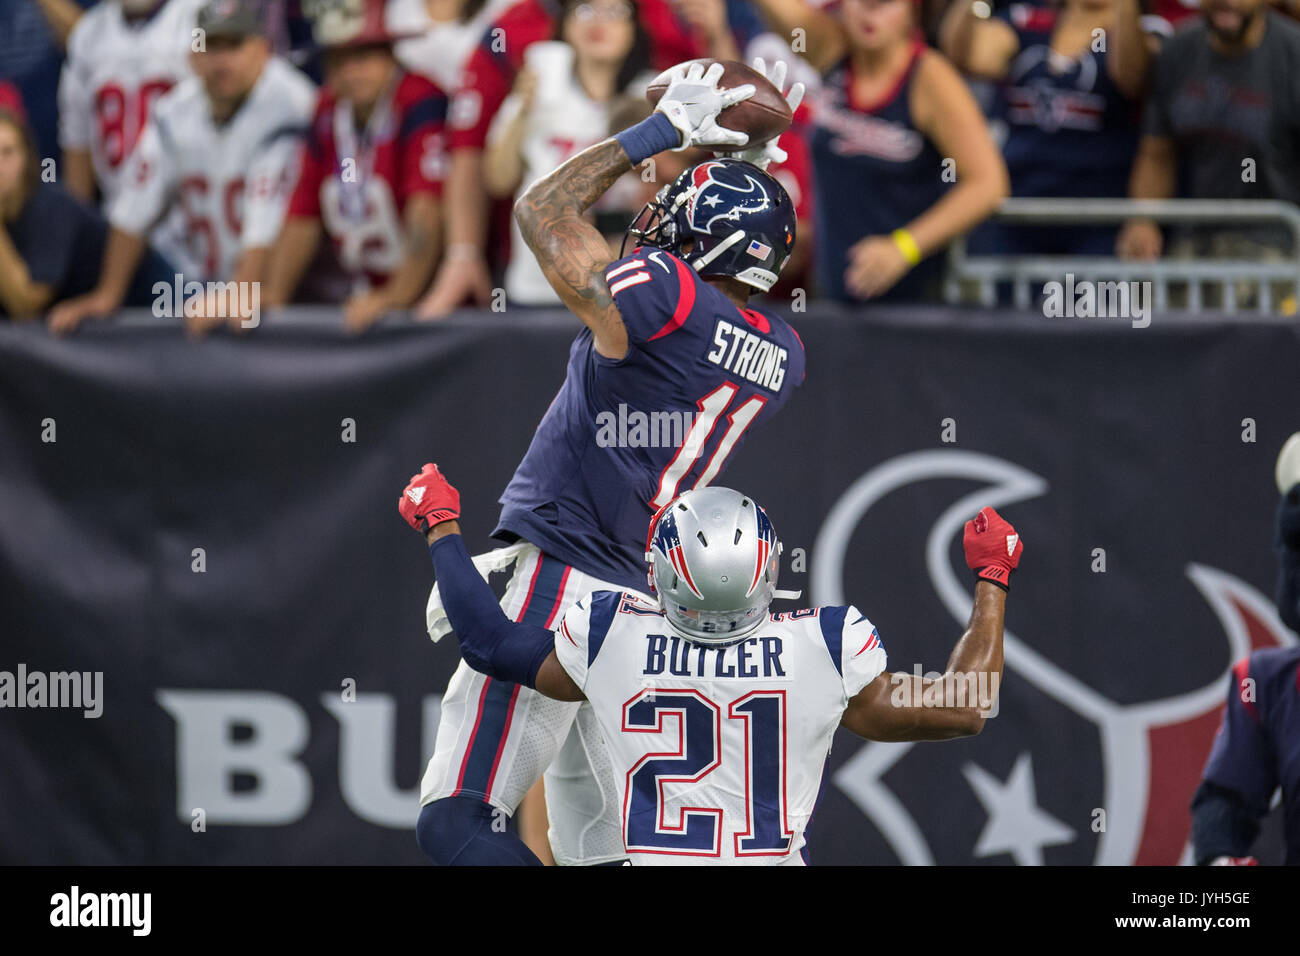 best service bf878 b64e9 August 19, 2017: Houston Texans wide receiver Jaelen Strong ...